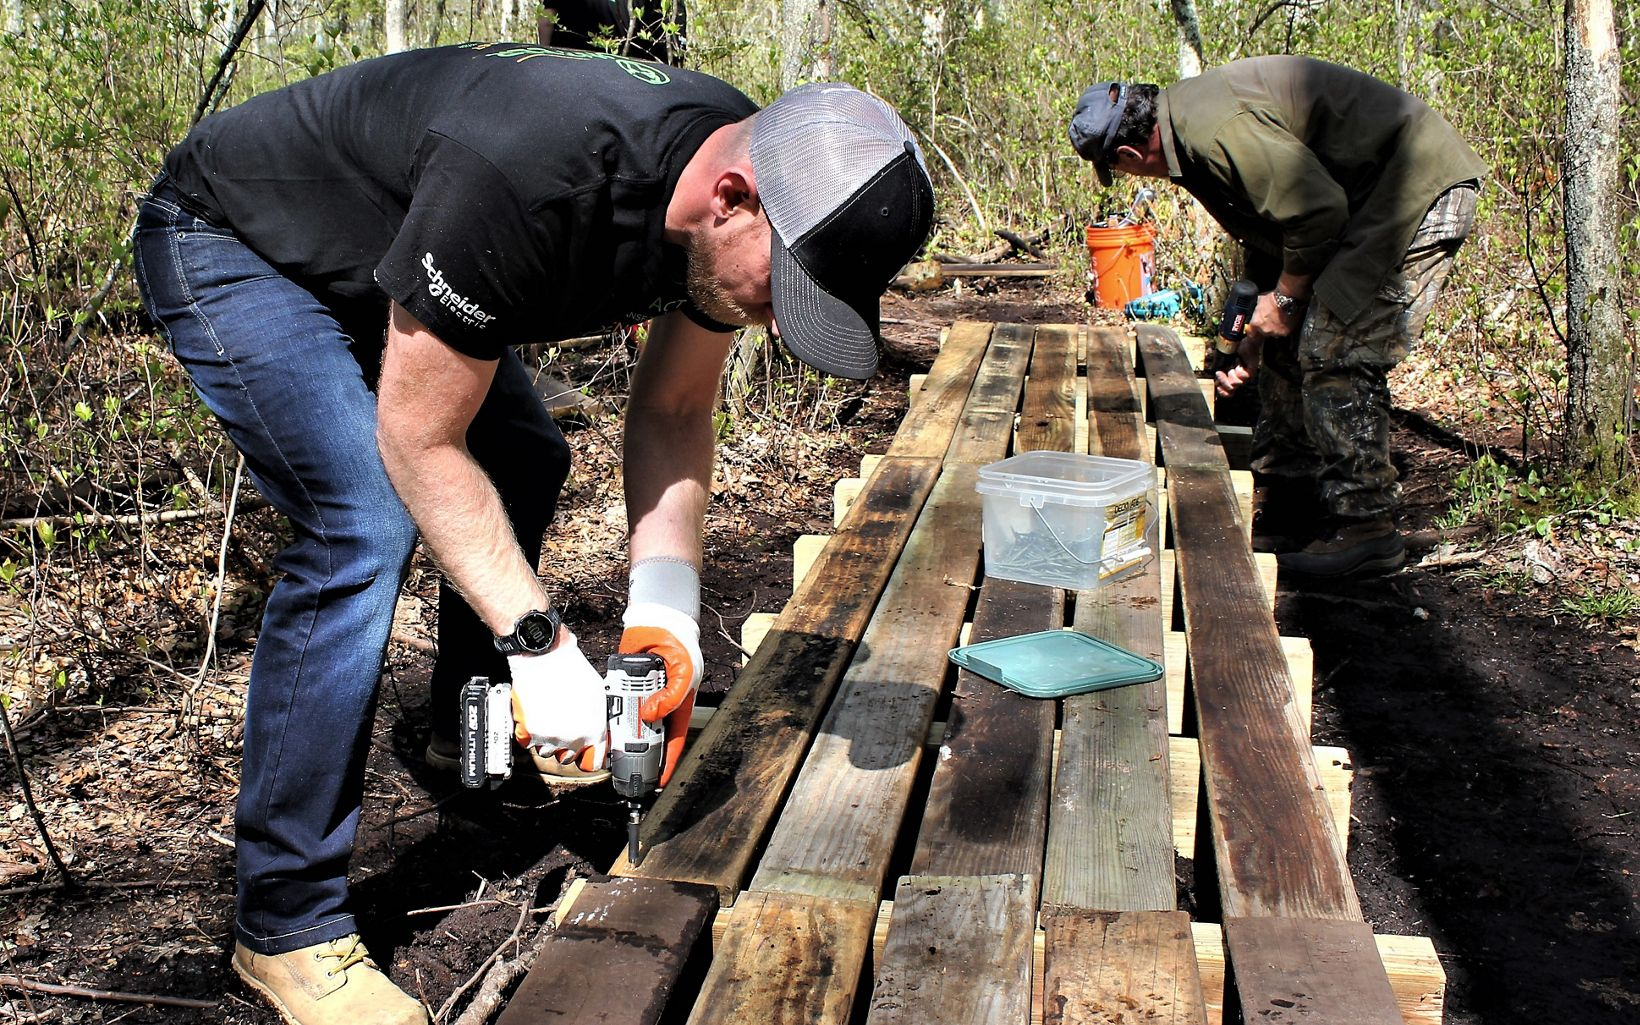 A male volunteer holding a drill crouches over a low wooden footbridge, under construction on a wooded trail.